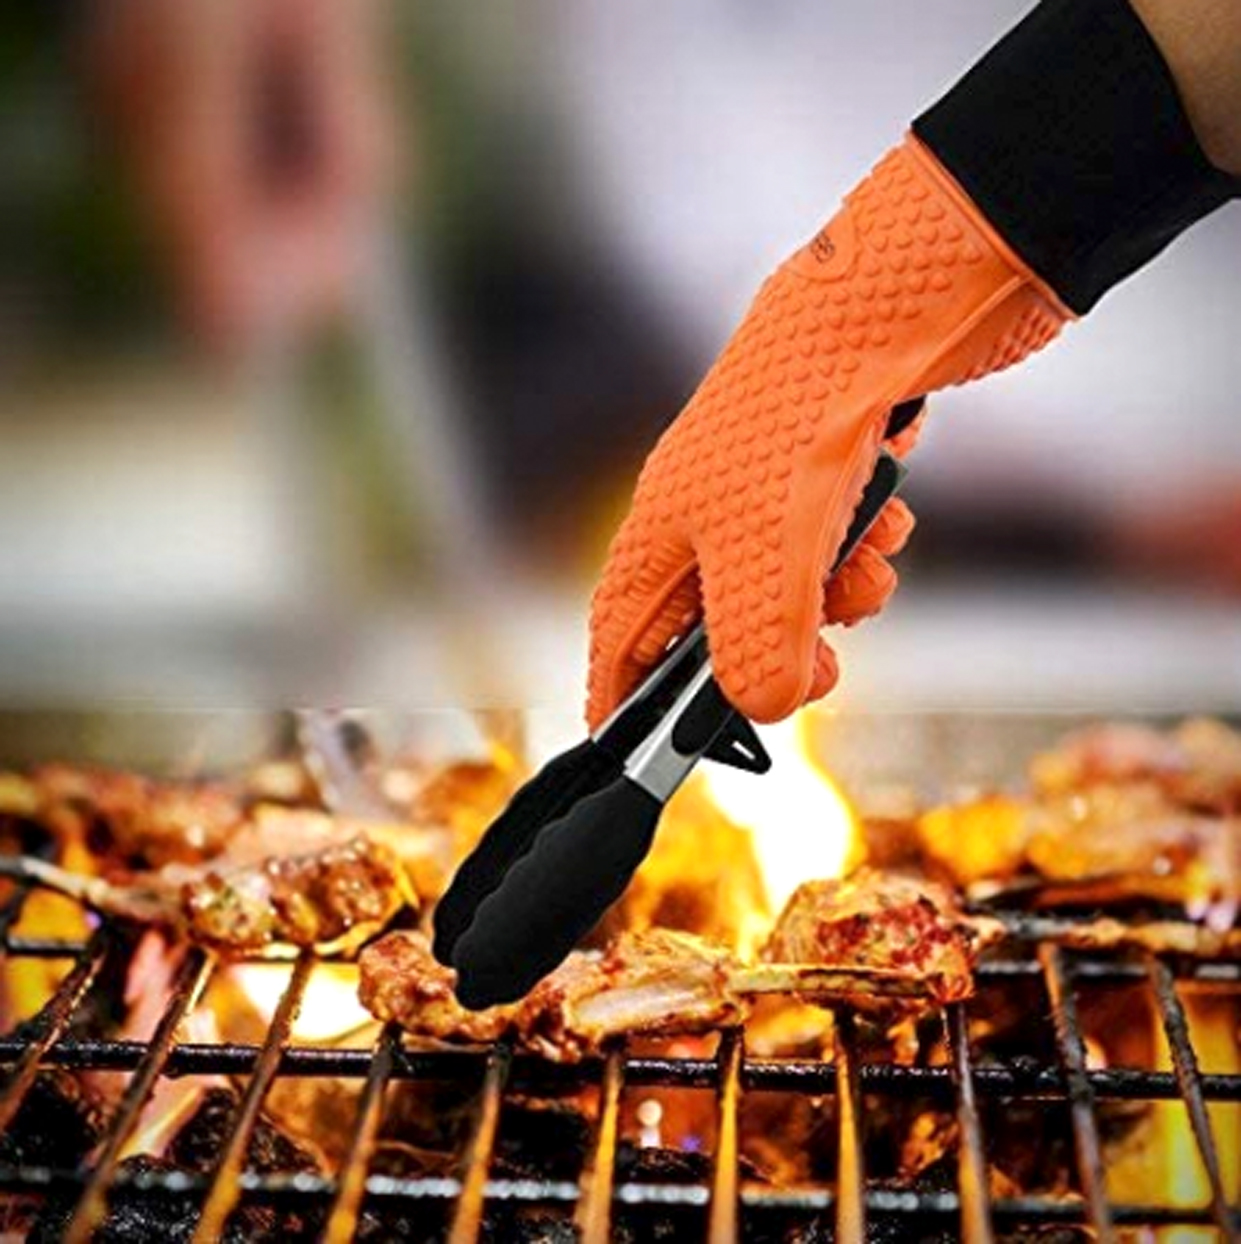 Grilling gloves on a hot grill